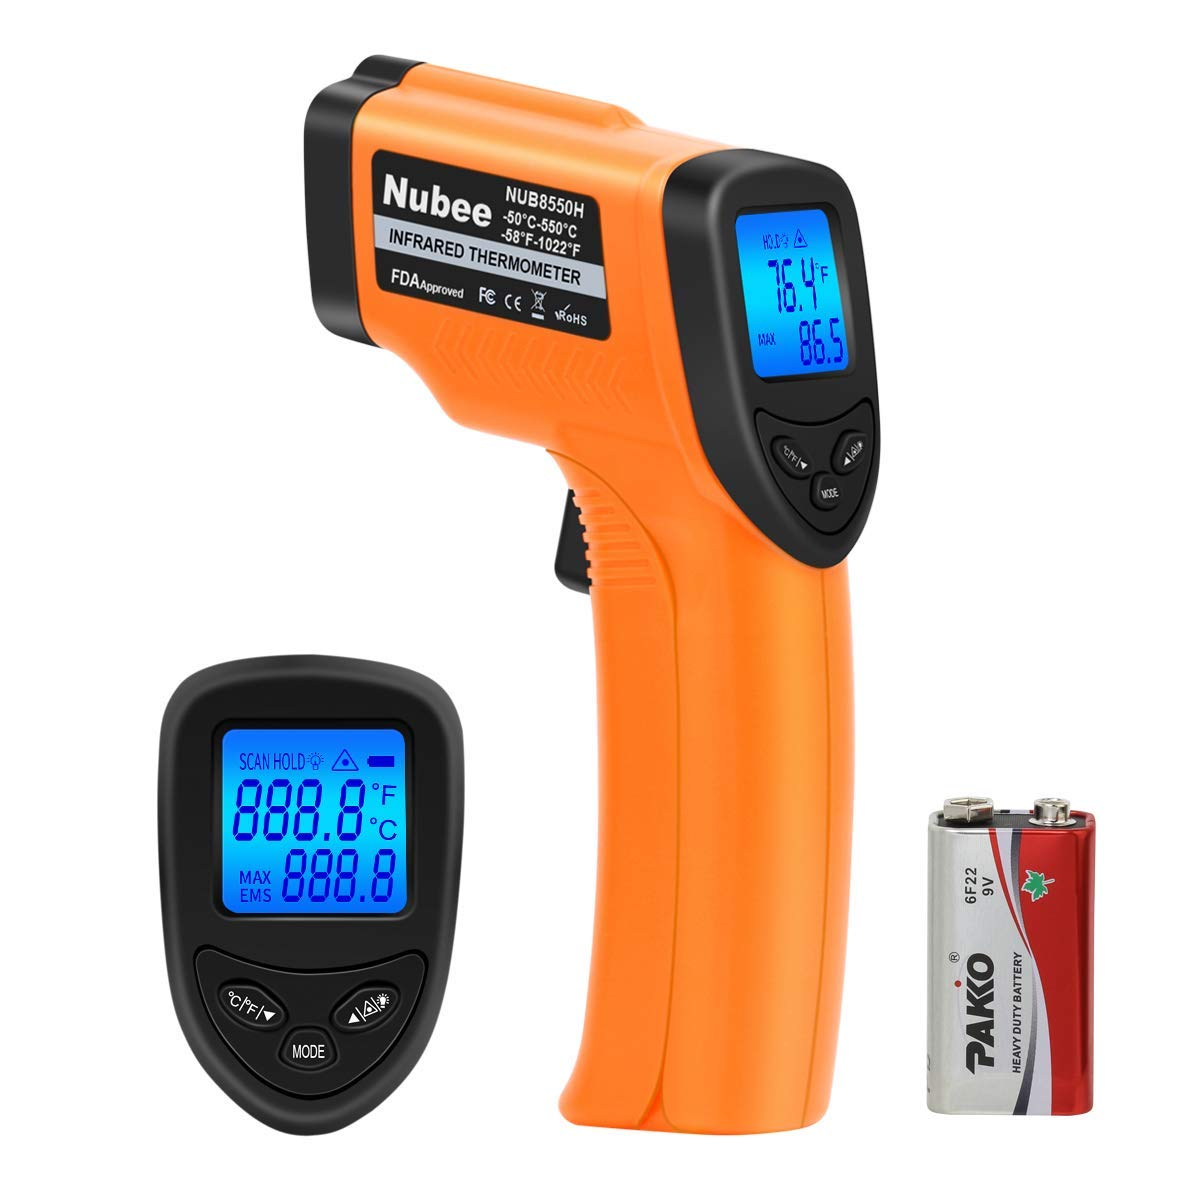 Nubee NUB8550H Digital Infrared Thermometer -58°F~ 1022°F (-50°C ~ 550°C) with Adjustable Emissivity & Max Display Non-Contact Temperature Gun with Laser Thermometer for Cooking Meat Kitchen Refrigerator Pool Oven, Orange and Black by Nubee